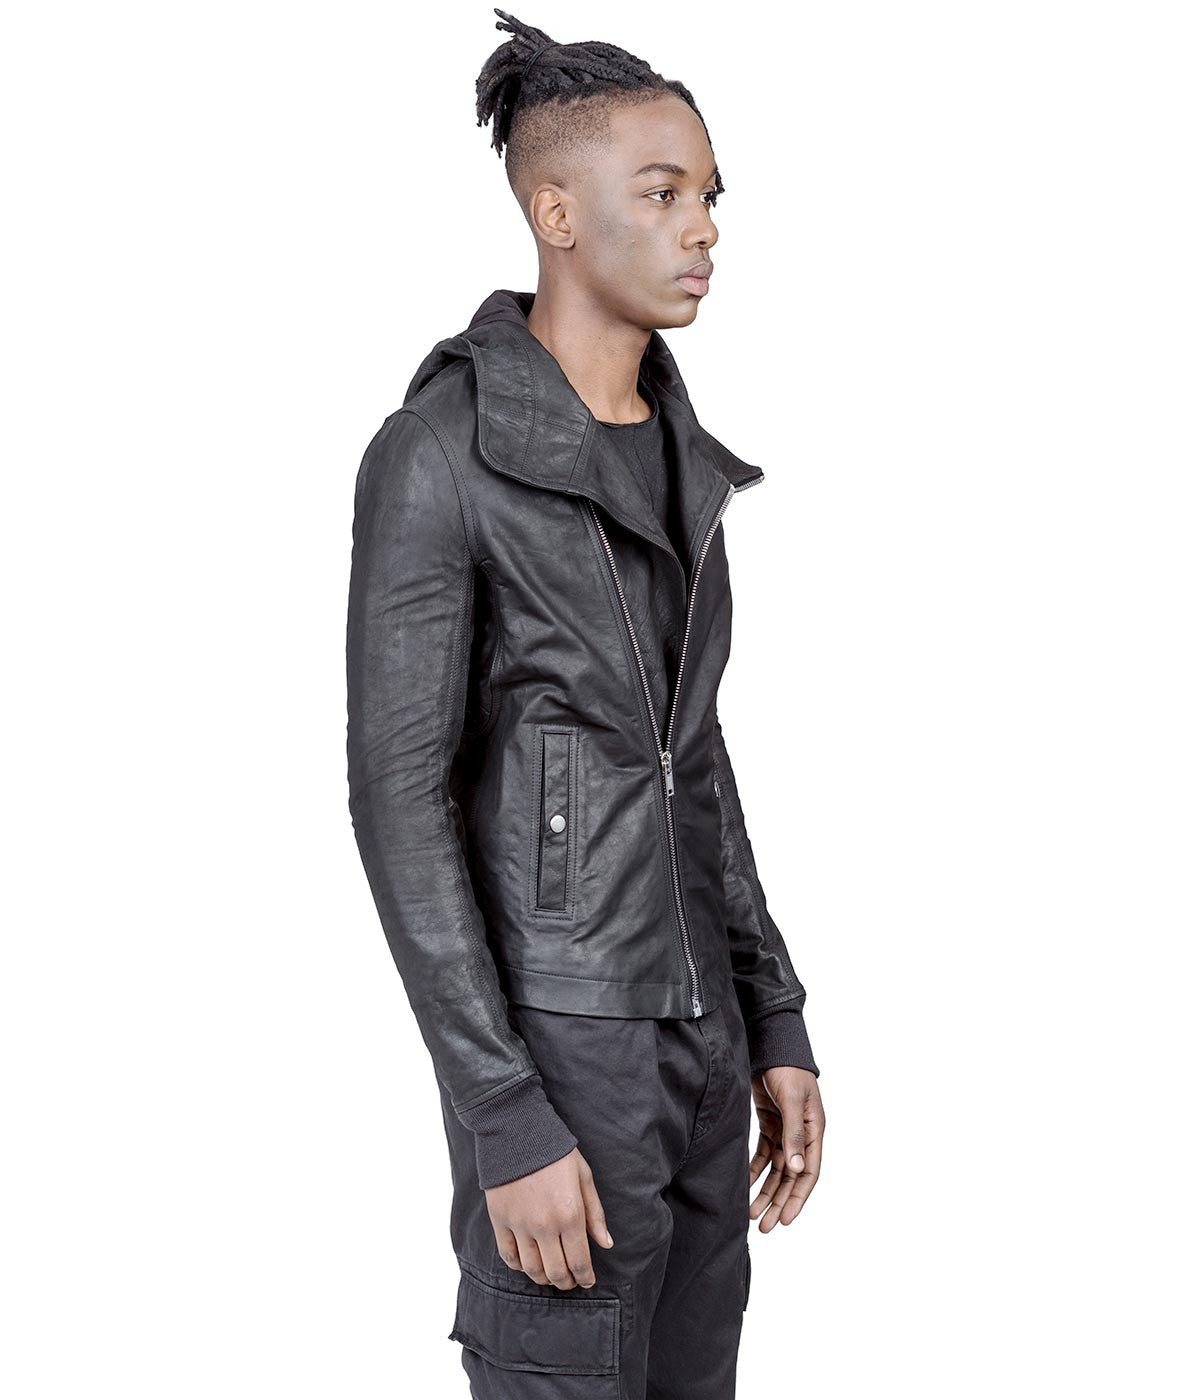 Black Leather Hood Zip Up Jacket